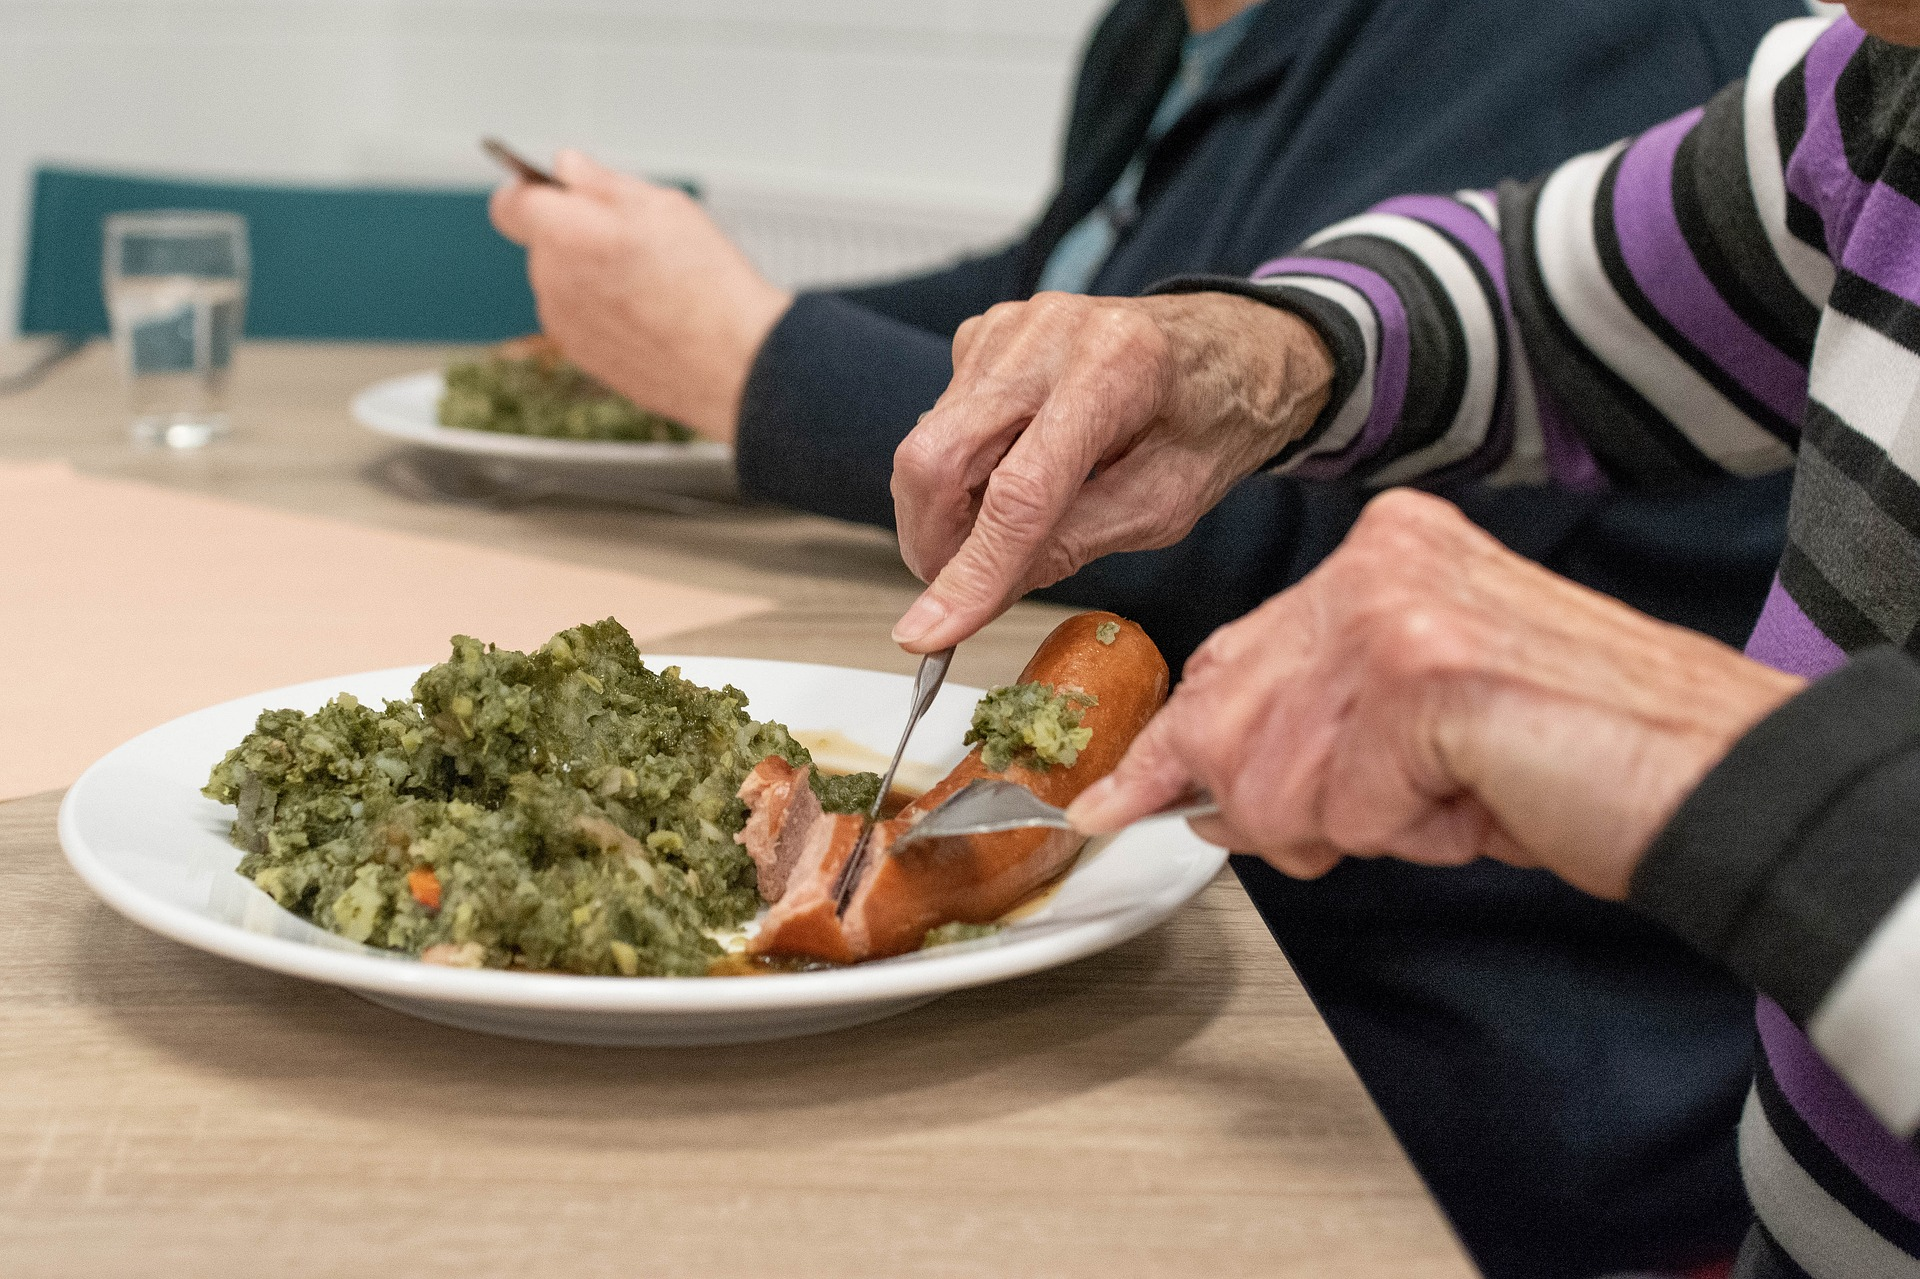 Hands of an older woman eating a meal